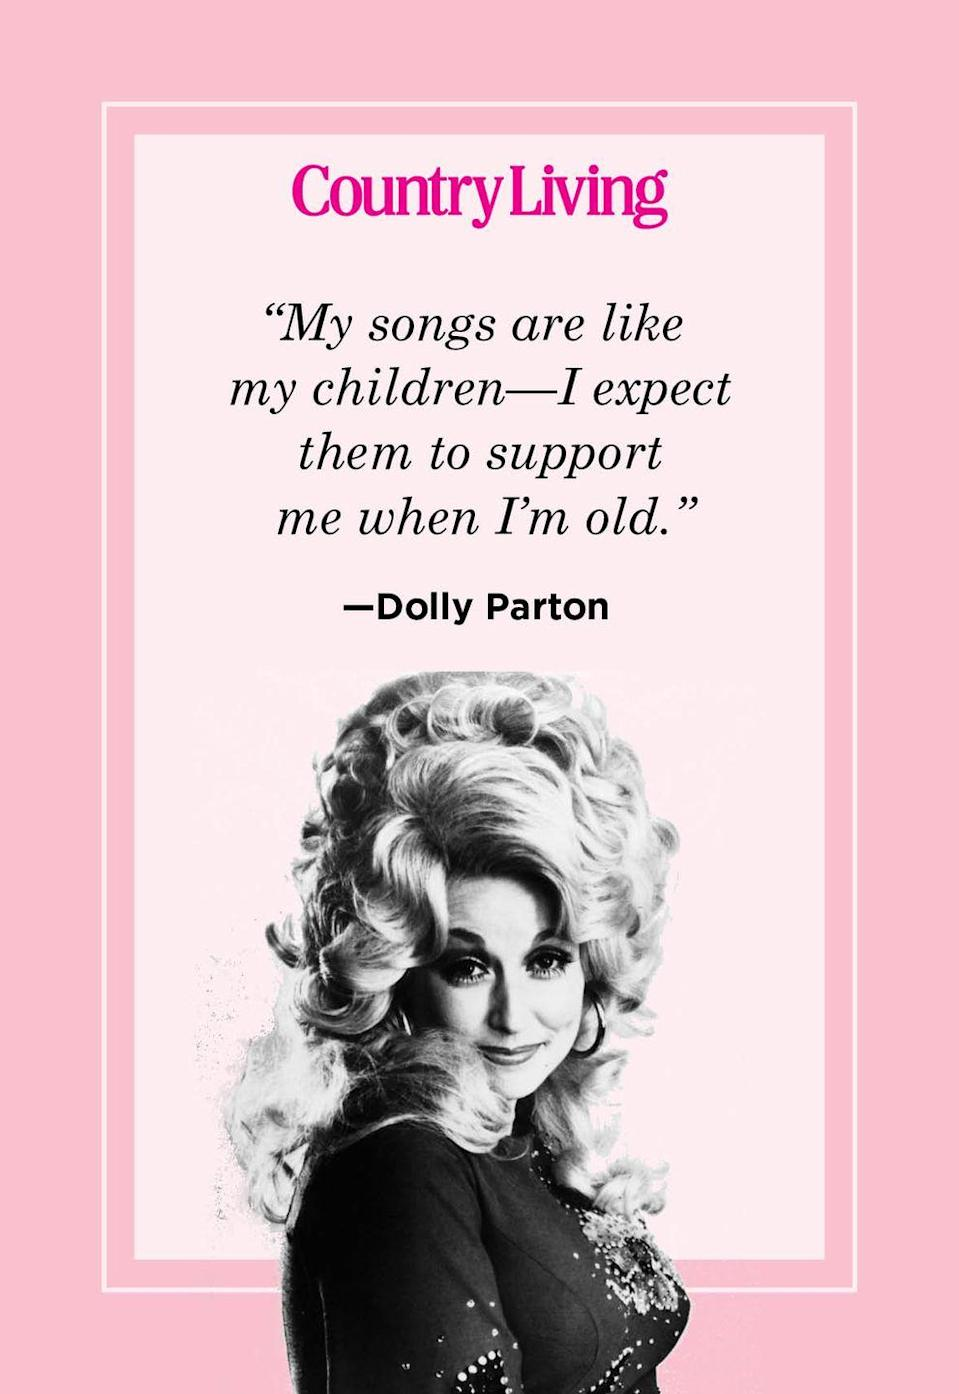 "<p>""My songs are like my children—I expect them to support me when I'm old.""</p>"